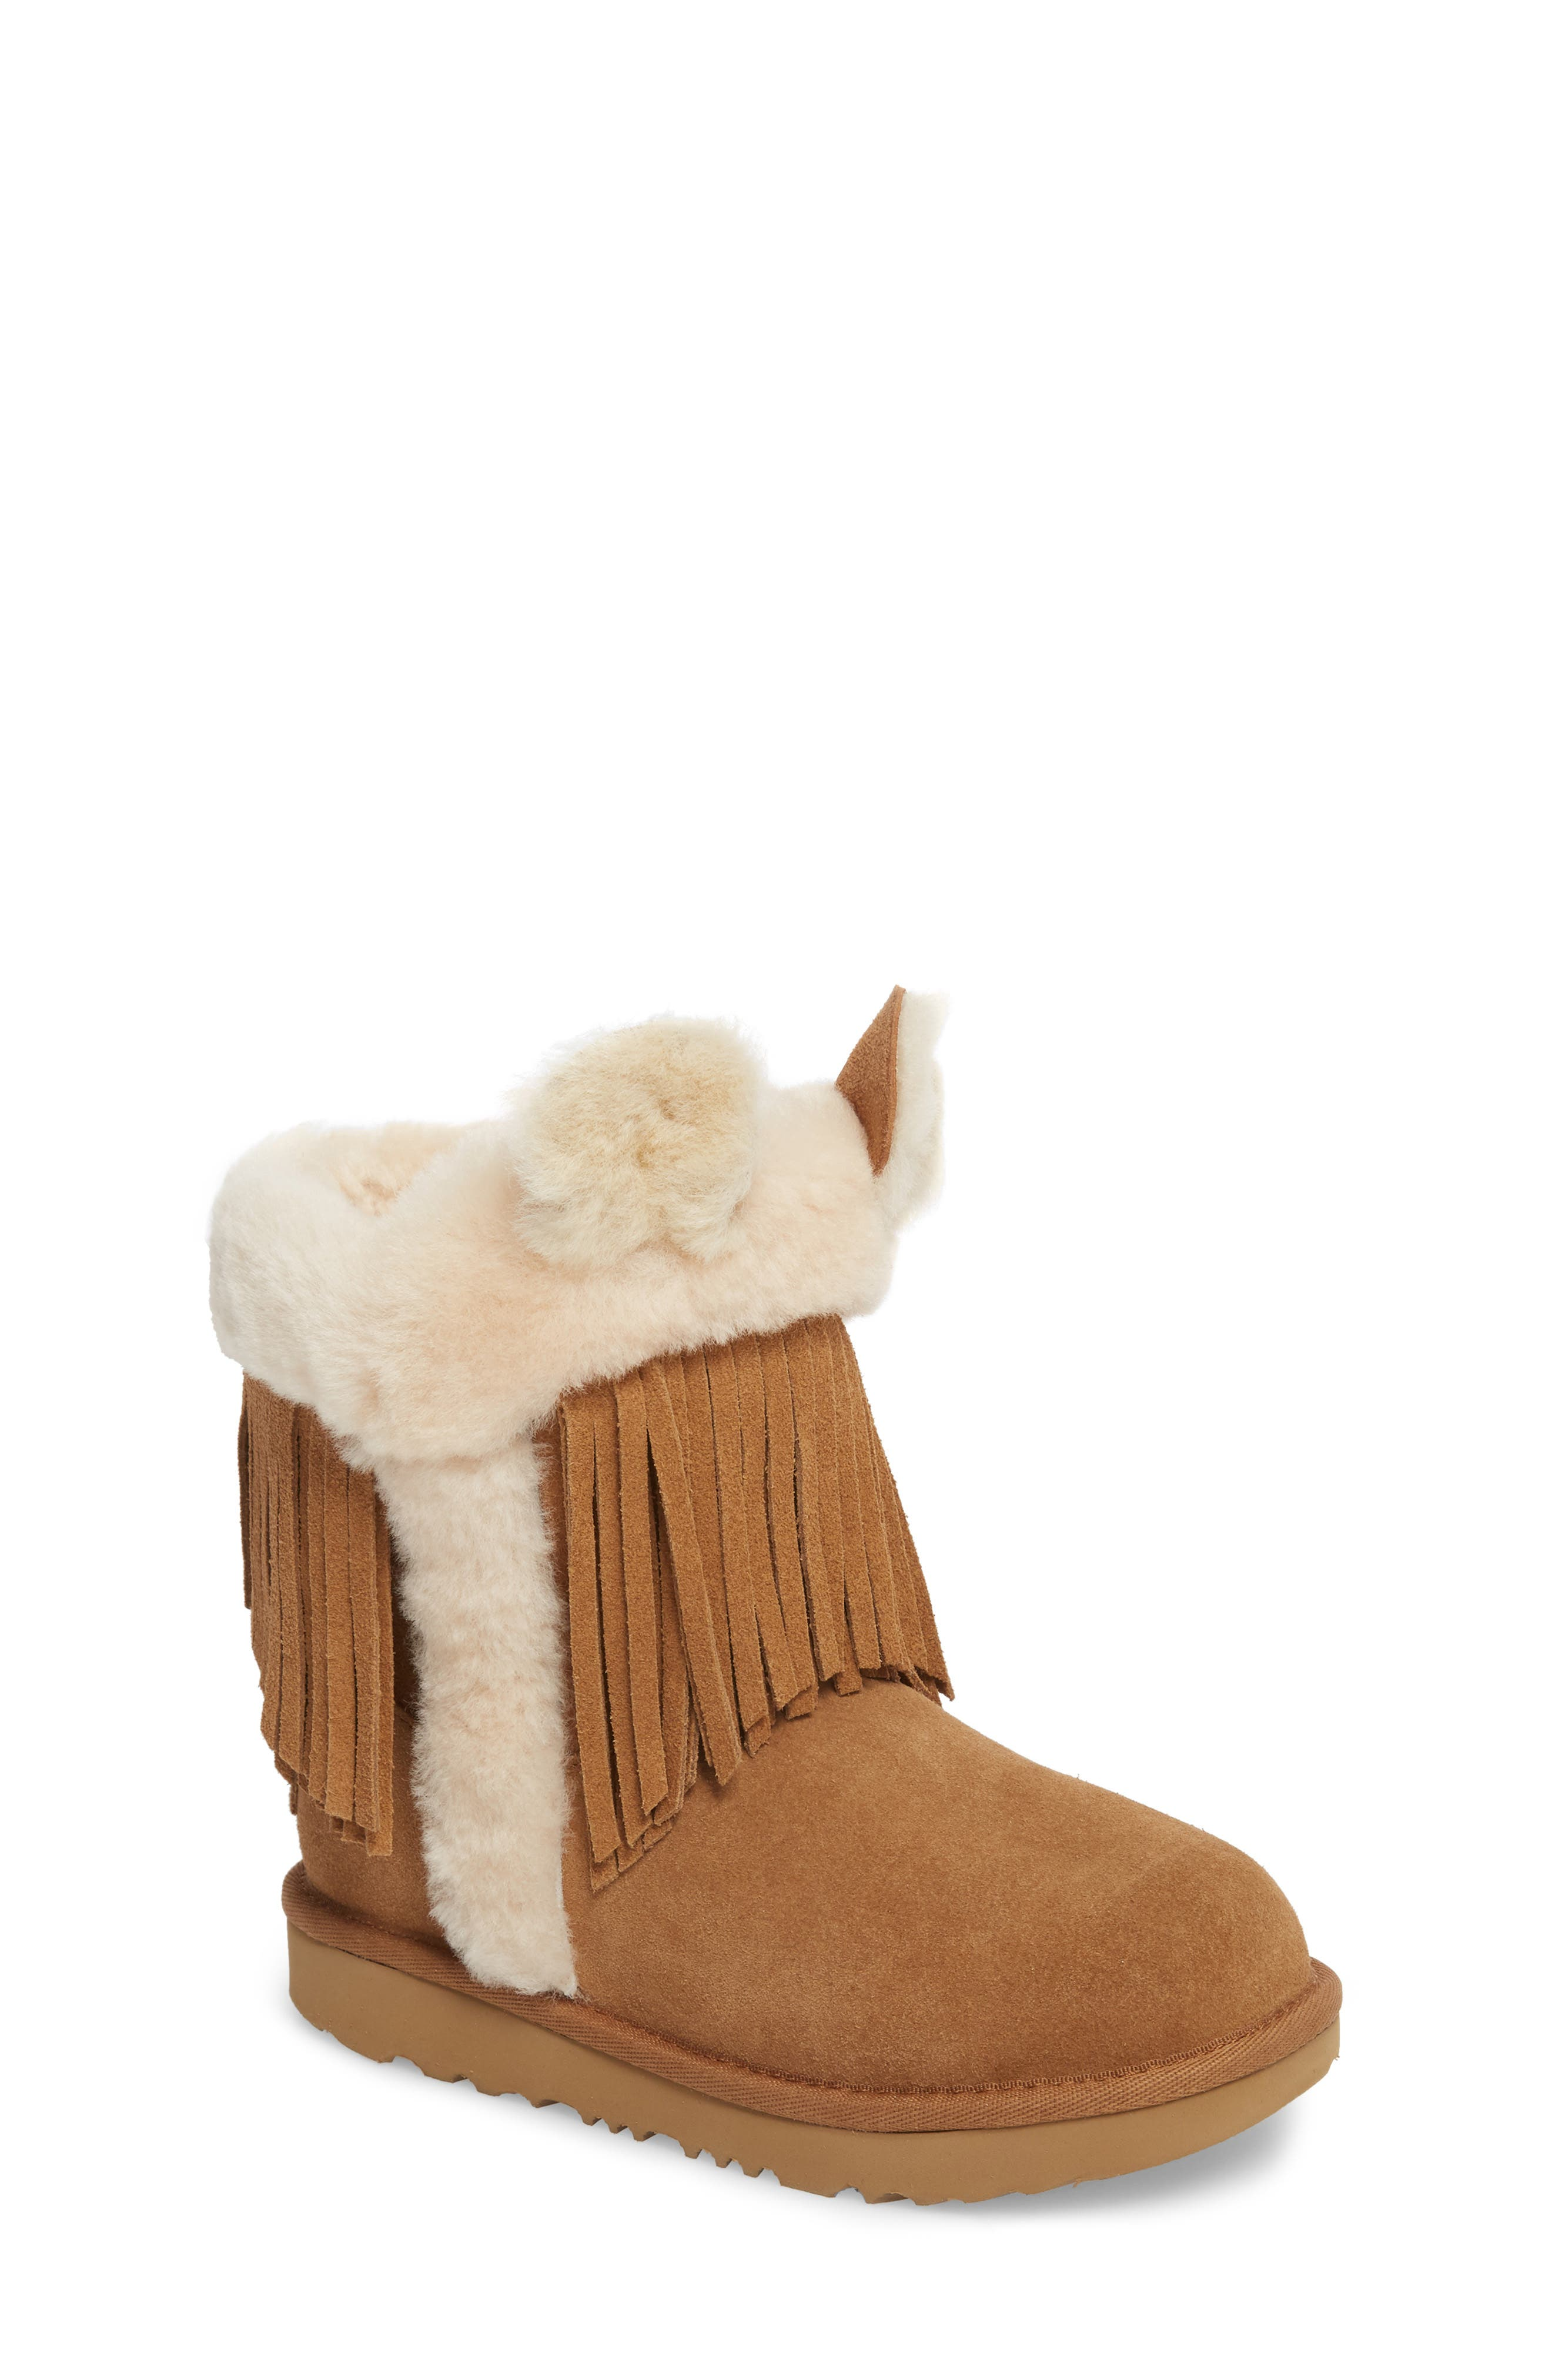 Darlala Classic II Genuine Shearling Boot,                             Main thumbnail 1, color,                             CHESTNUT